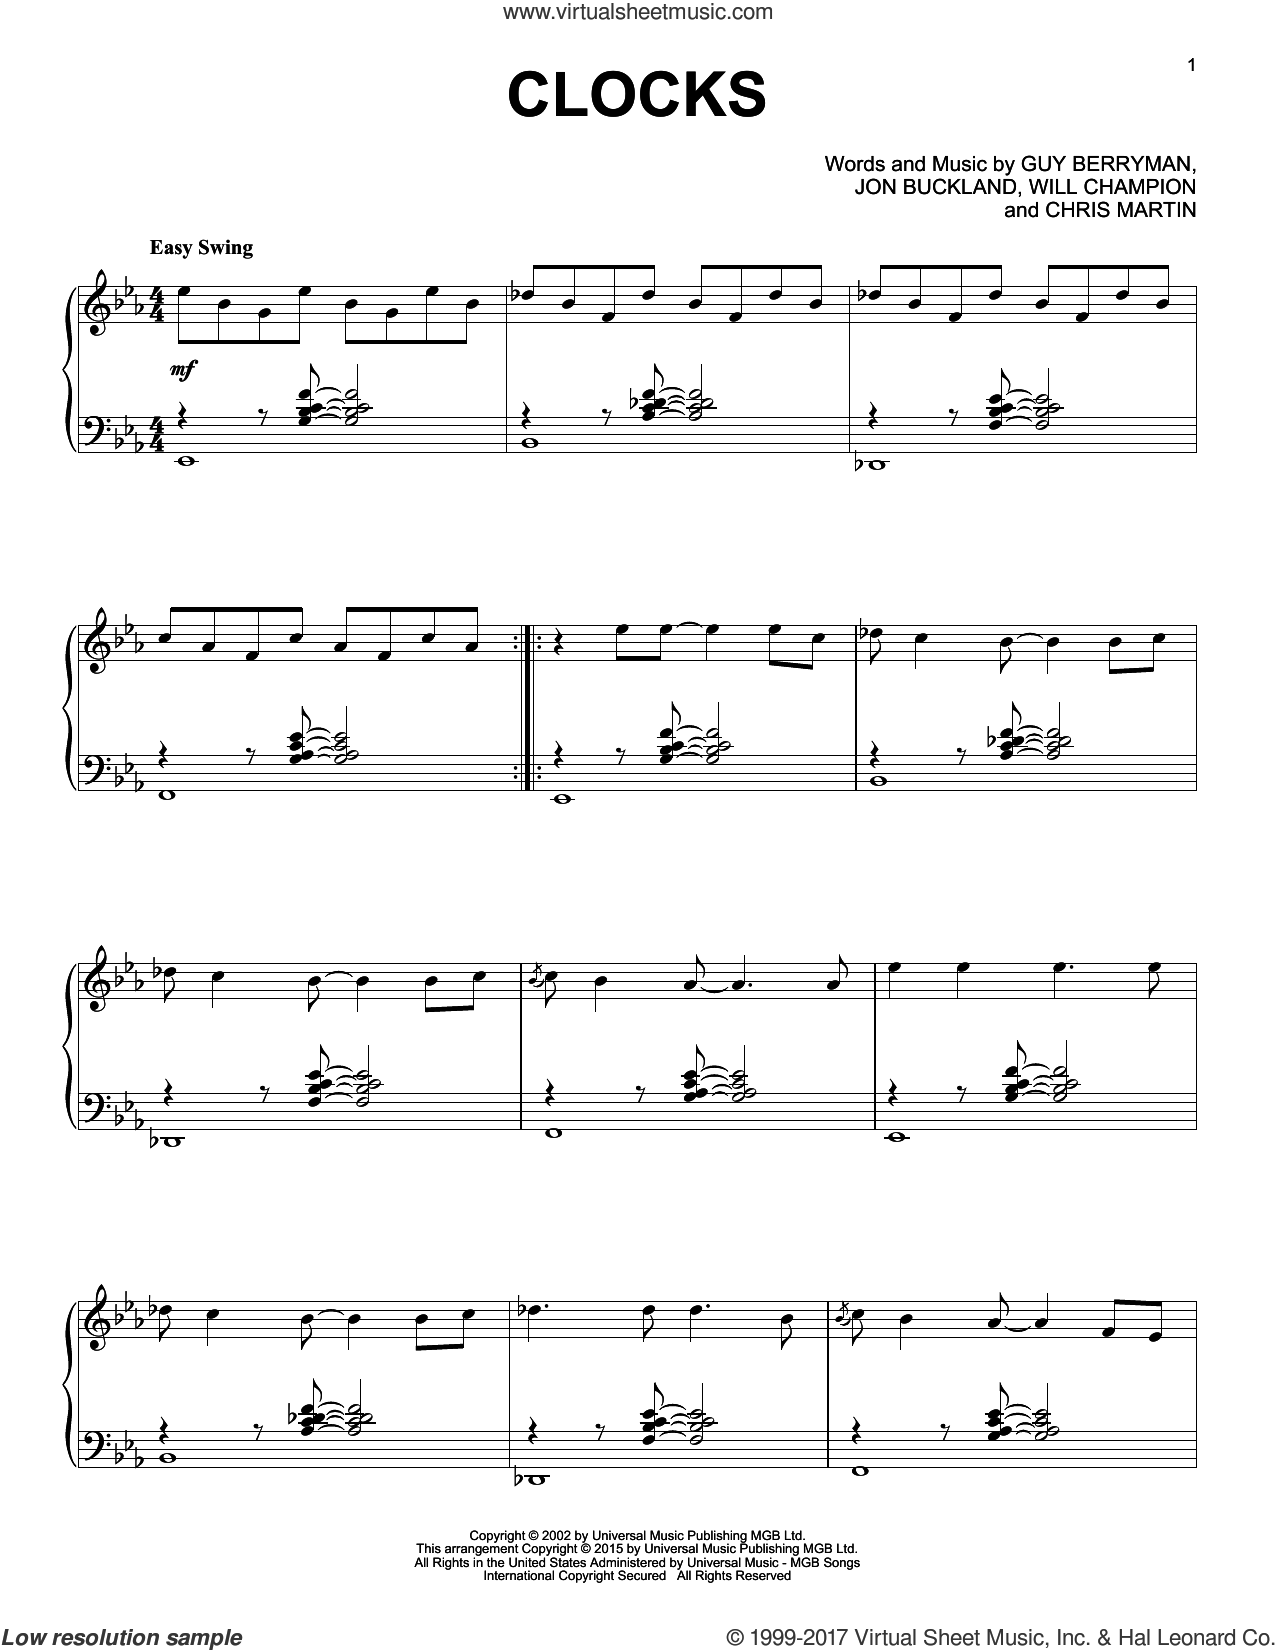 Clocks [Jazz version] sheet music for piano solo by Coldplay, Chris Martin, Guy Berryman, Jon Buckland and Will Champion, intermediate skill level